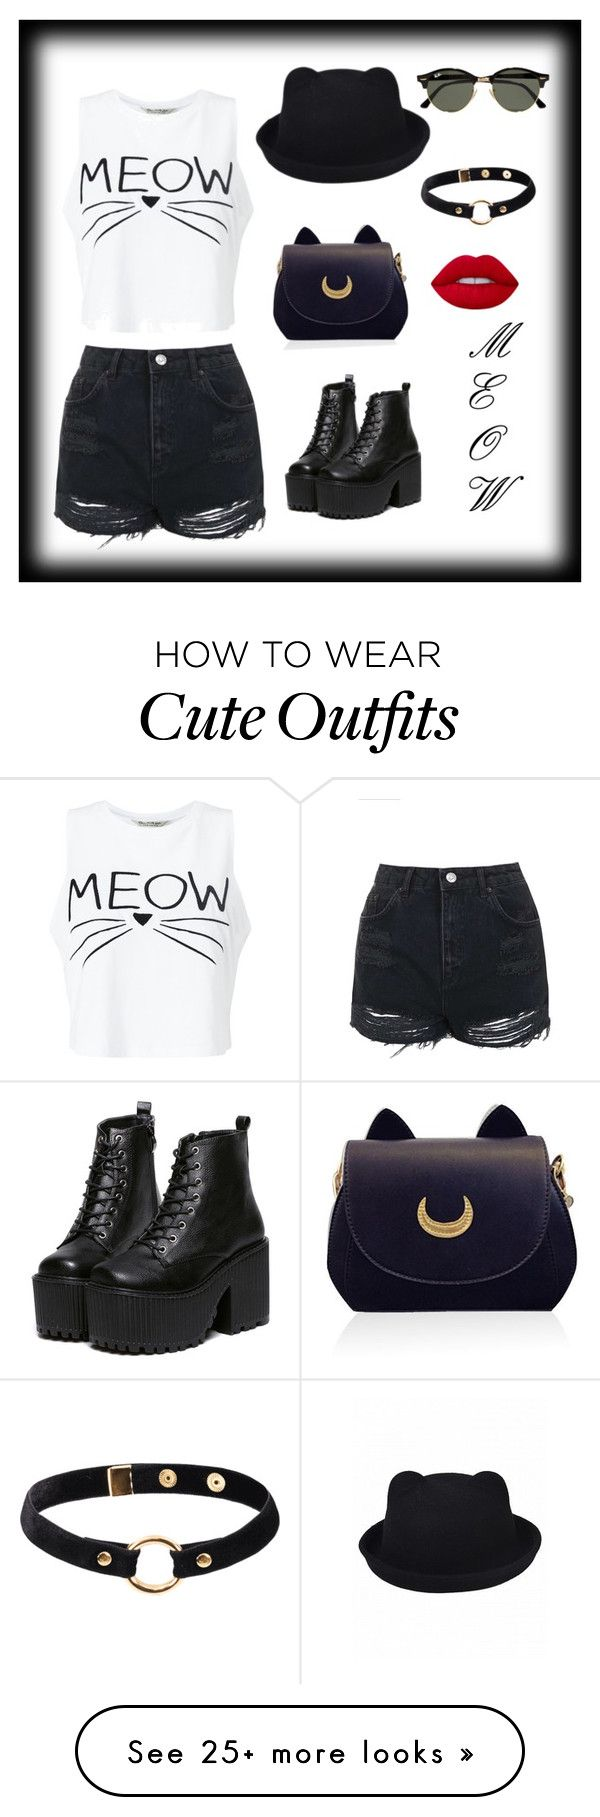 """CUTE KITTY OUTFIT"" by fashioncenter on Polyvore featuring Miss Selfridge, Topshop, Ray-Ban, Nika and Lime Crime"